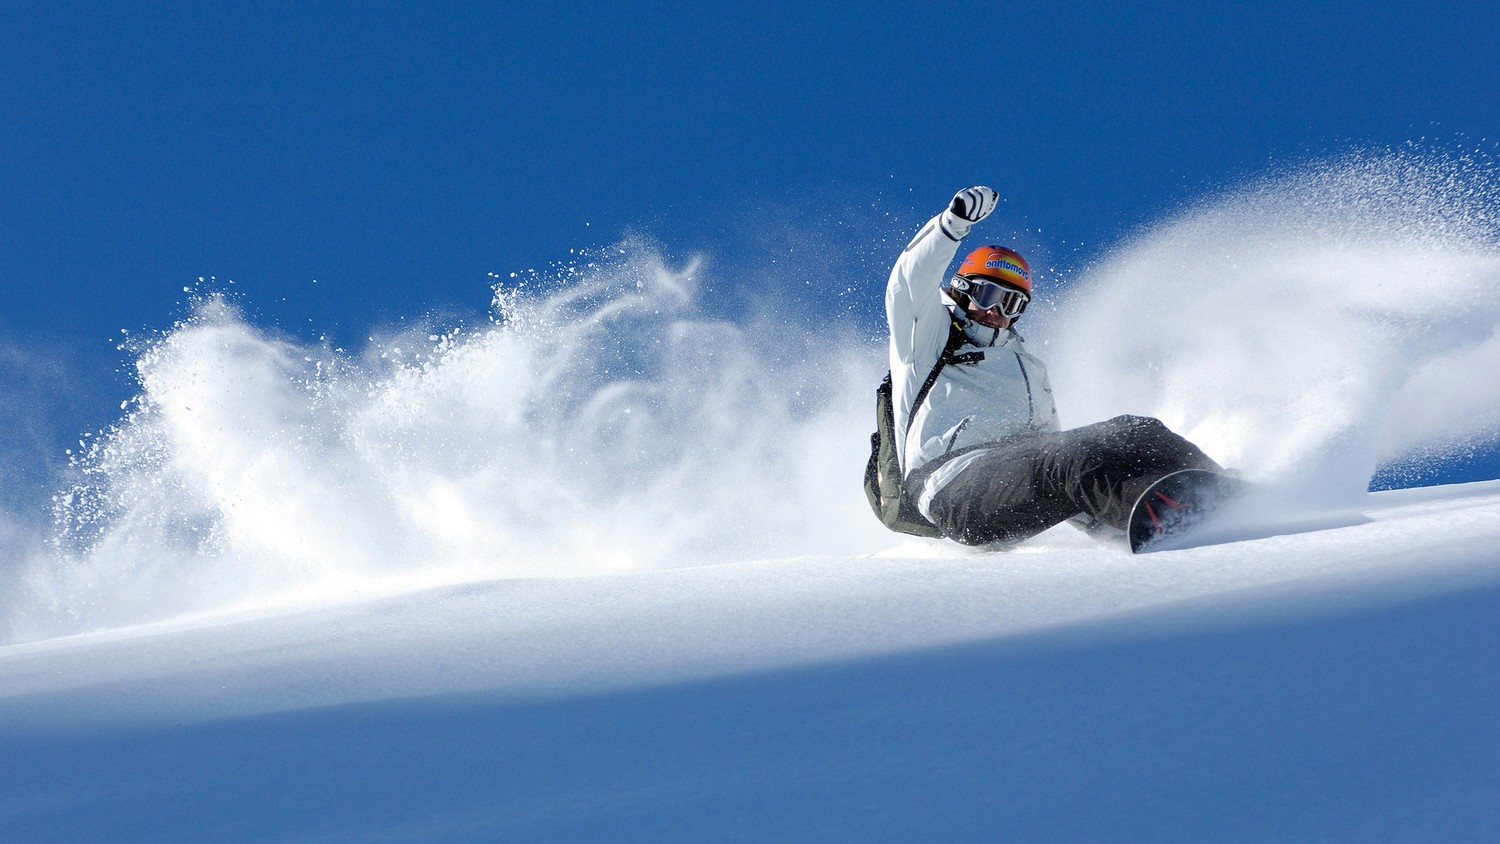 Snowboarding-Wallpaper